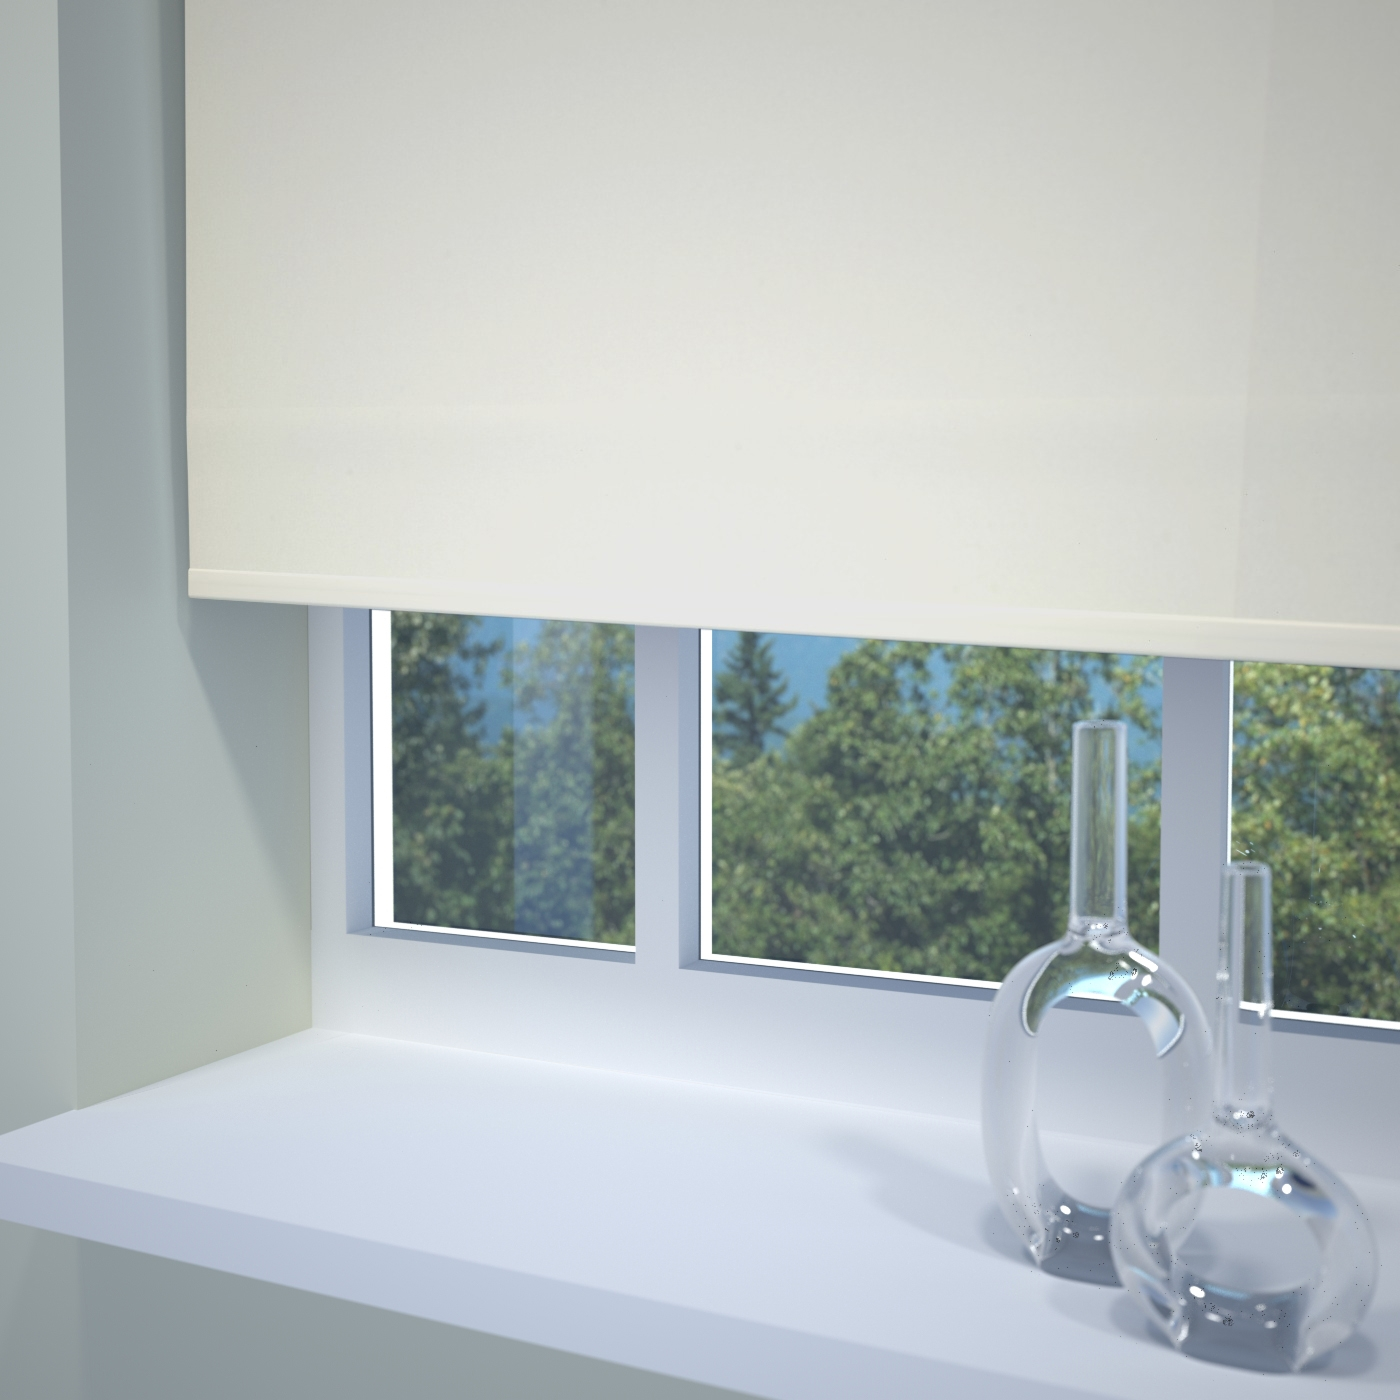 Kensington Paper Blinds Made To Measure Roller Blinds Blinds Hut Pertaining To Plain Roller Blinds (Image 3 of 15)